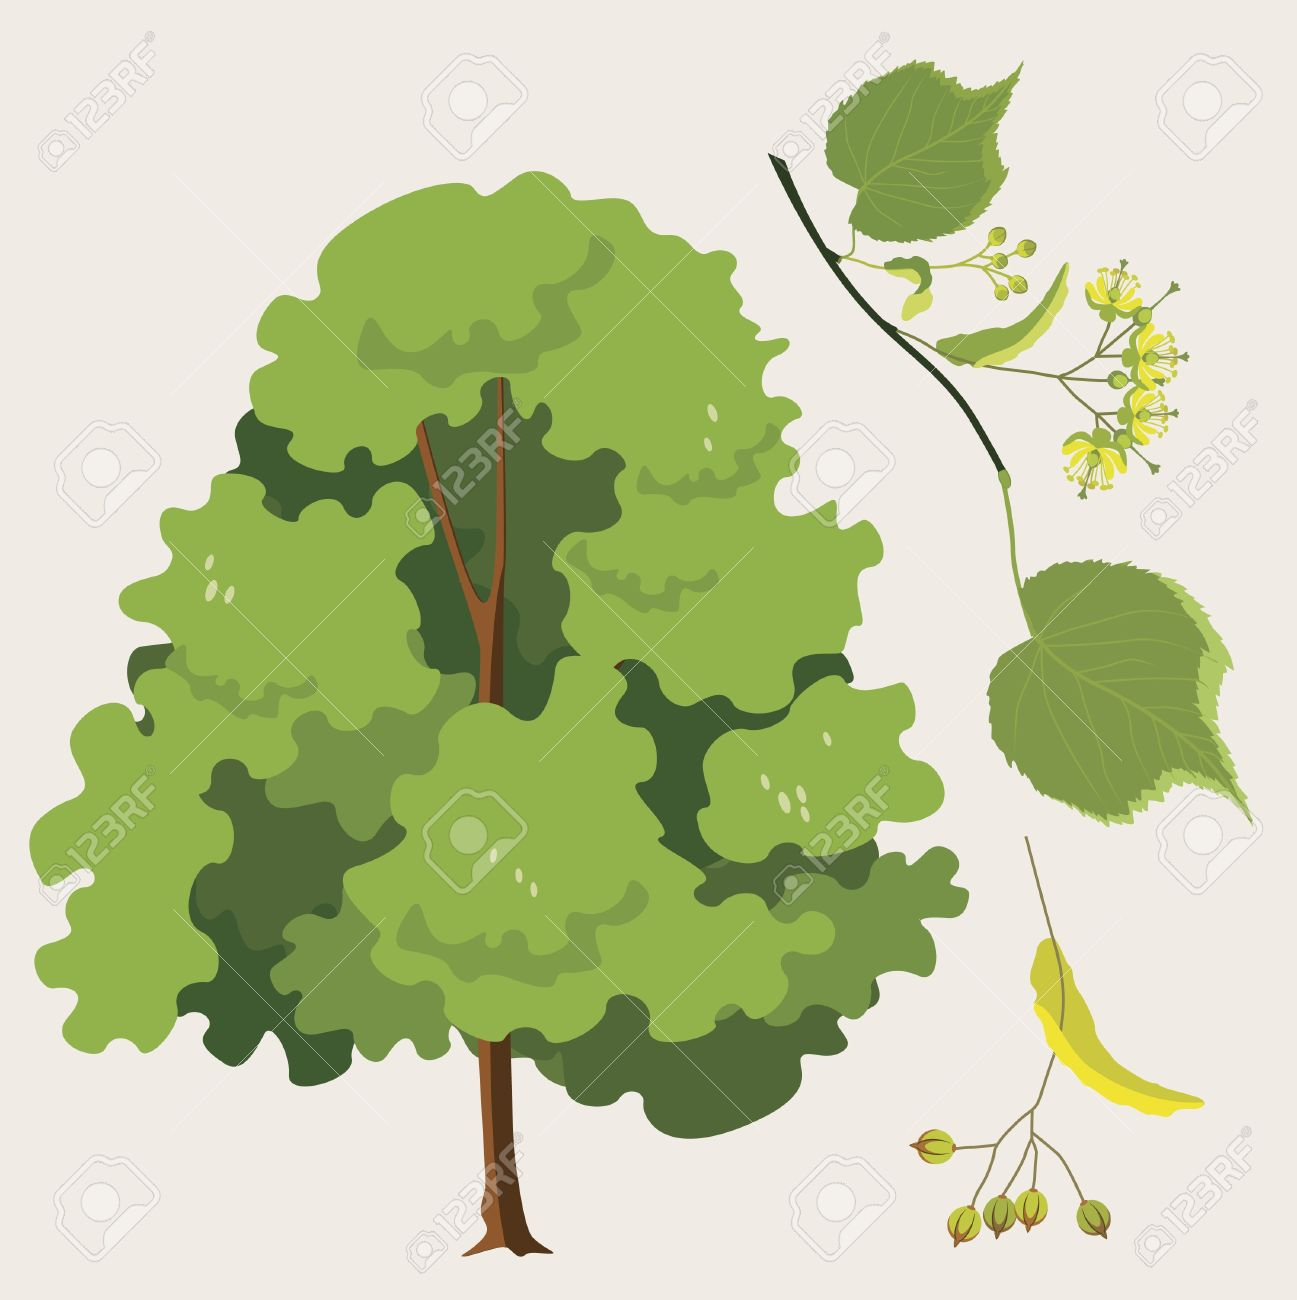 city  linden ordinary  with a leaf and seeds Stock Vector - 18568567